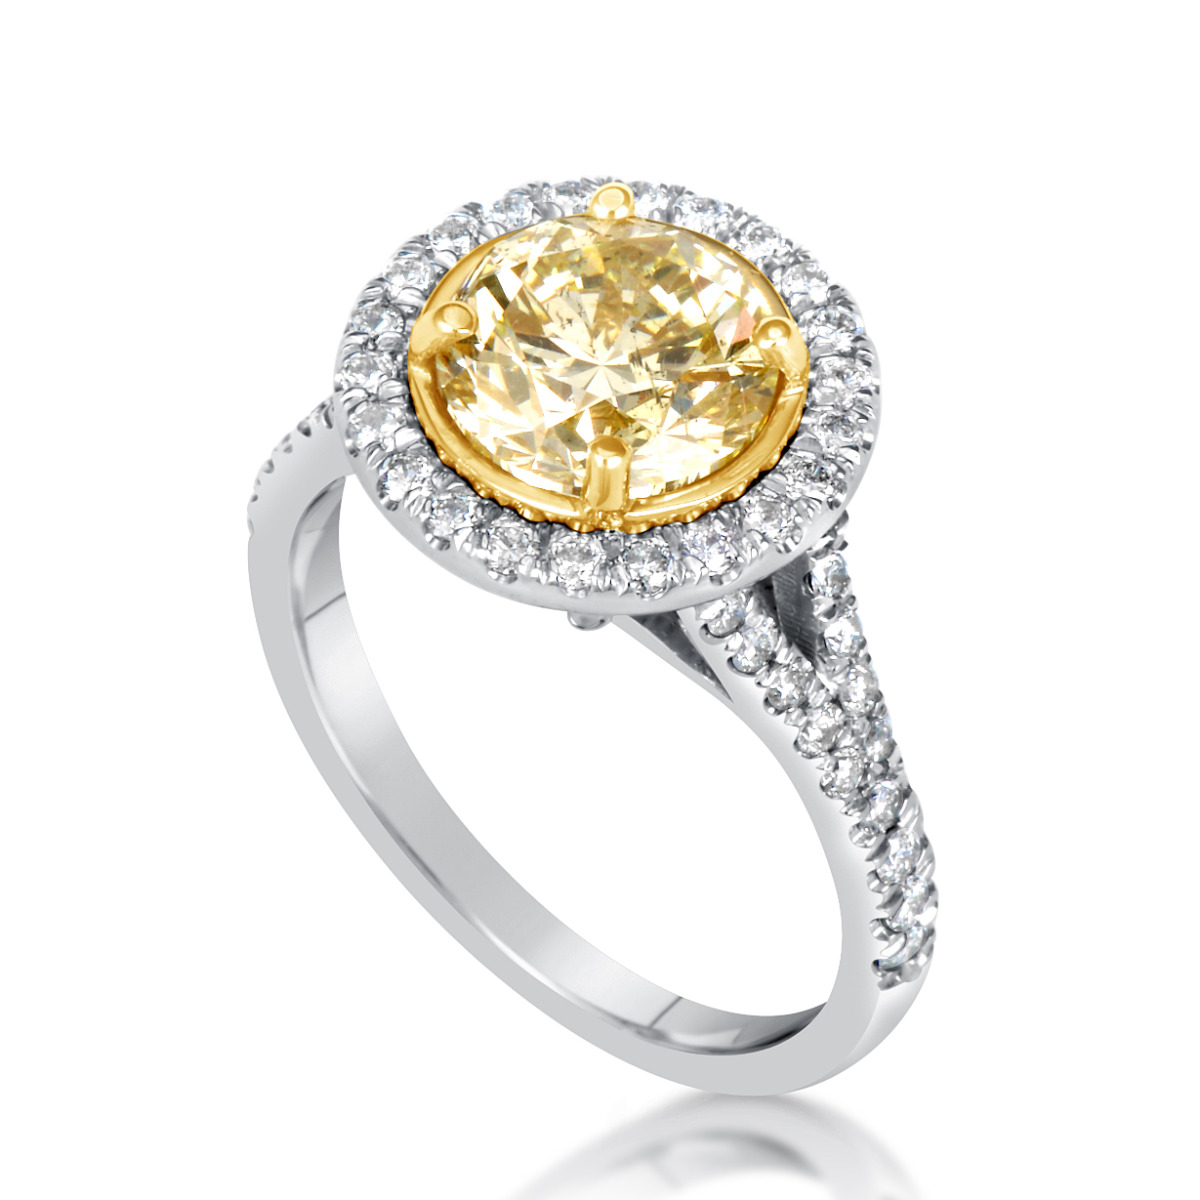 3 Ct Round Cut Vs Diamond Solitaire Engagement Ring 18k White Gold